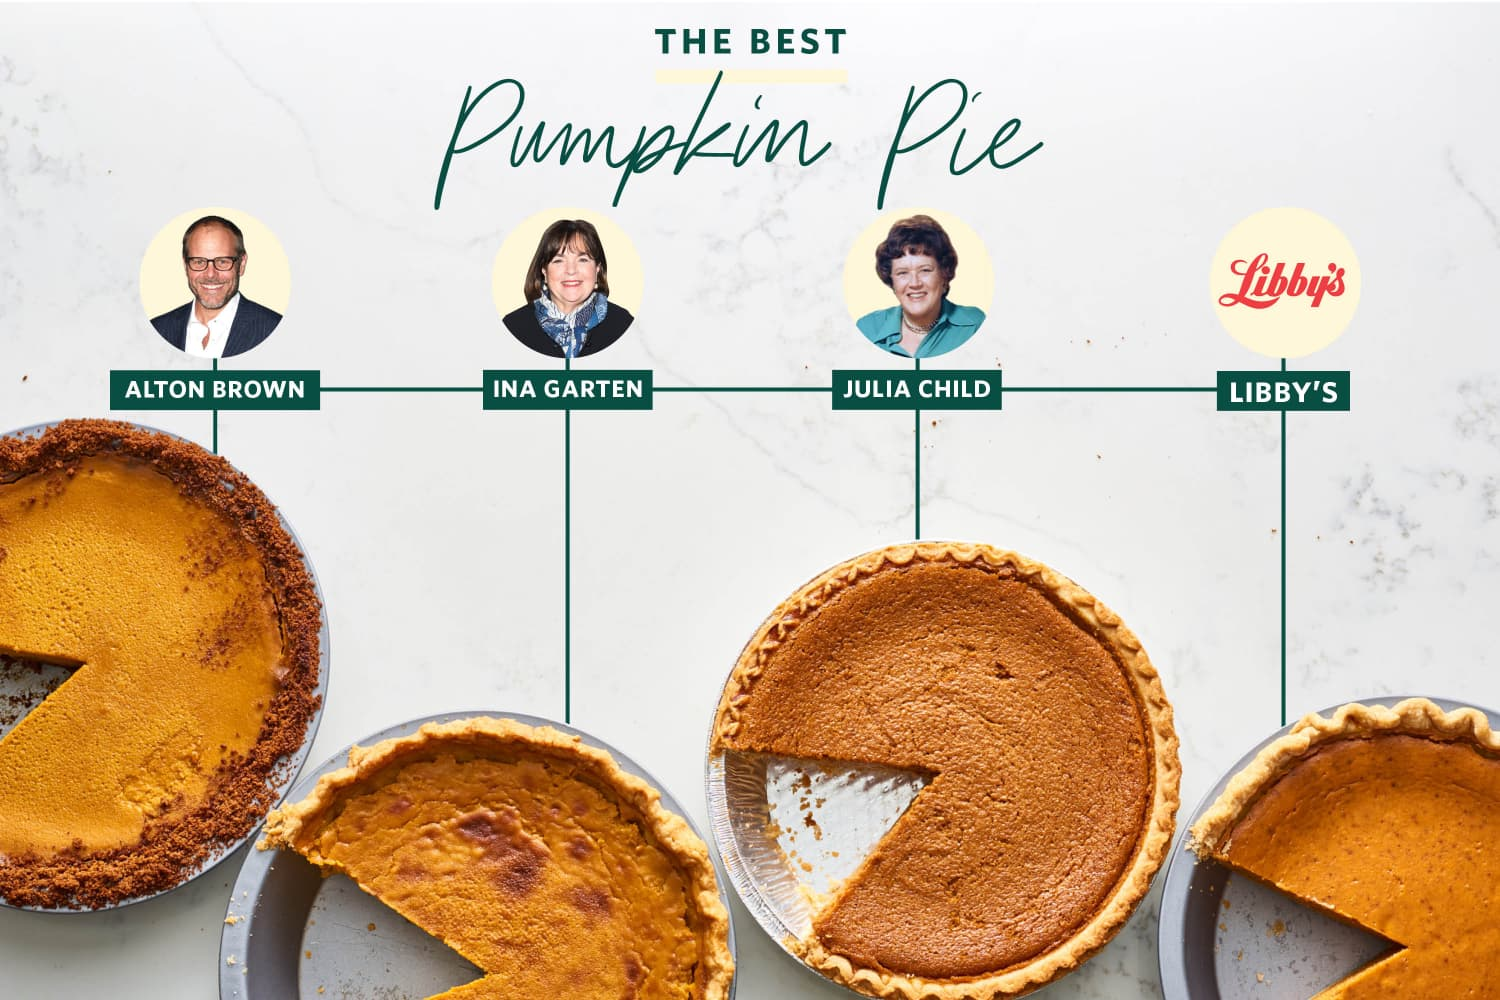 We Tested 4 Famous Pumpkin Pie Recipes and Found a Clear Winner